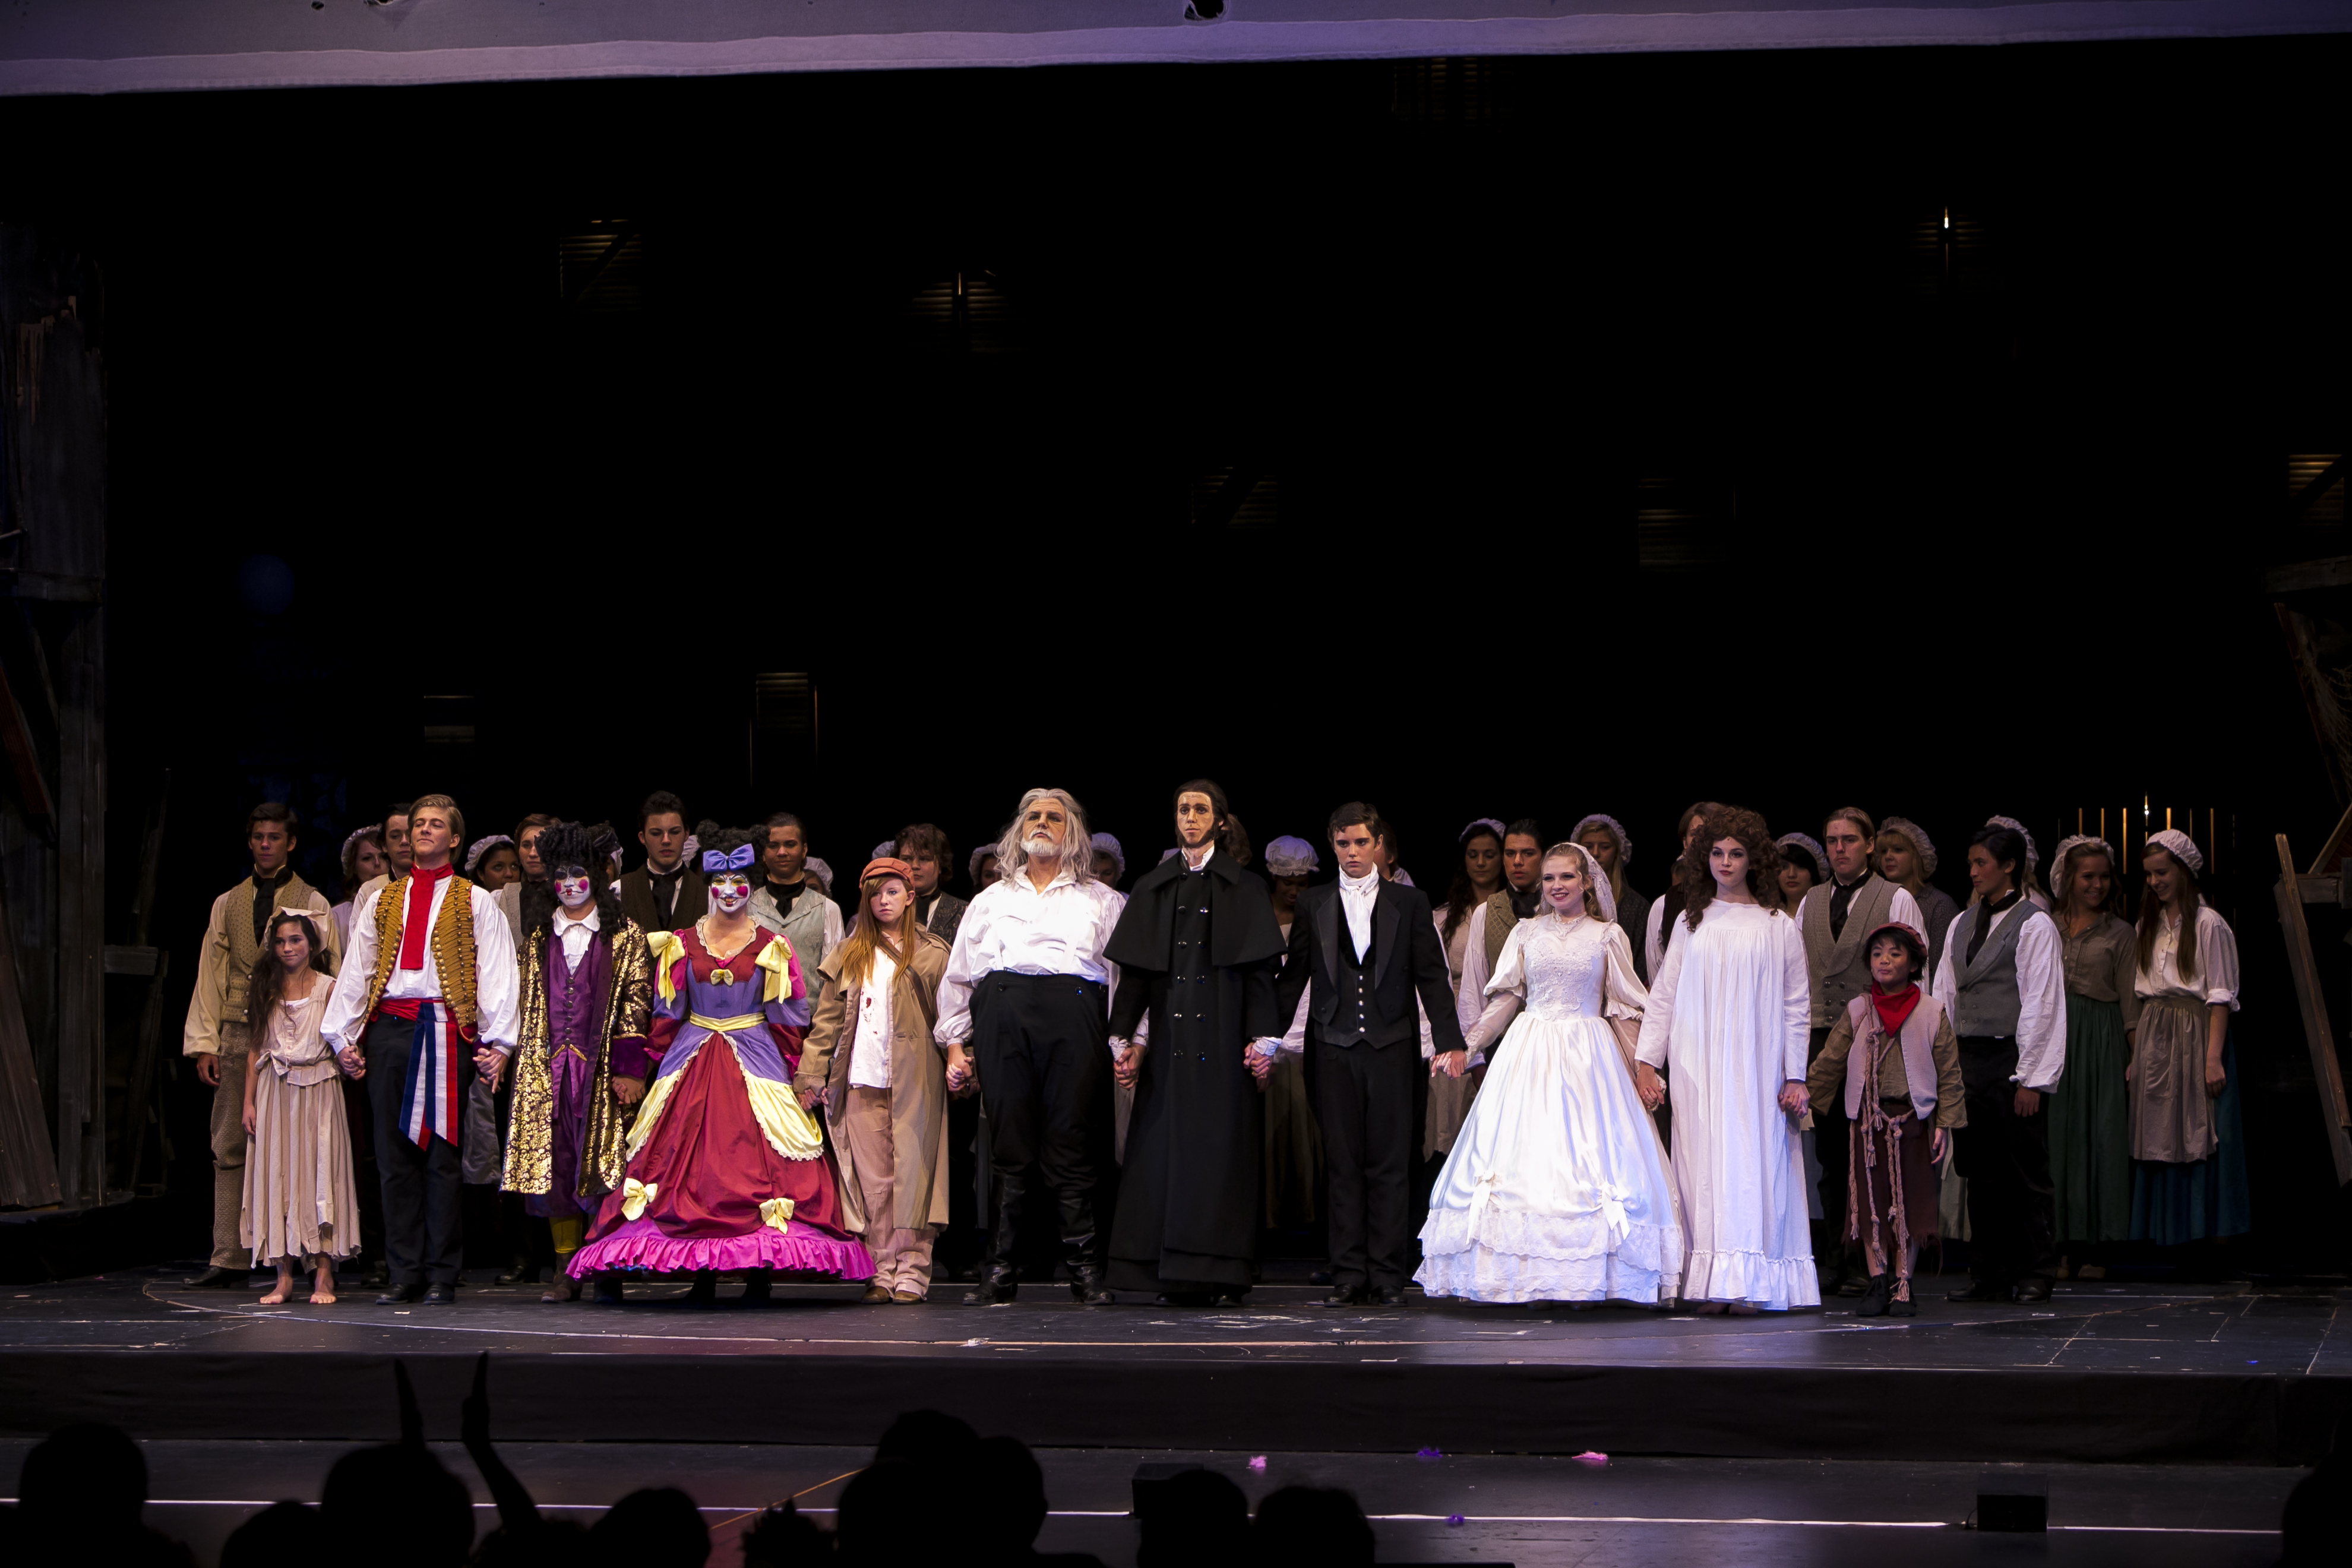 Les Miserables Curtain Call